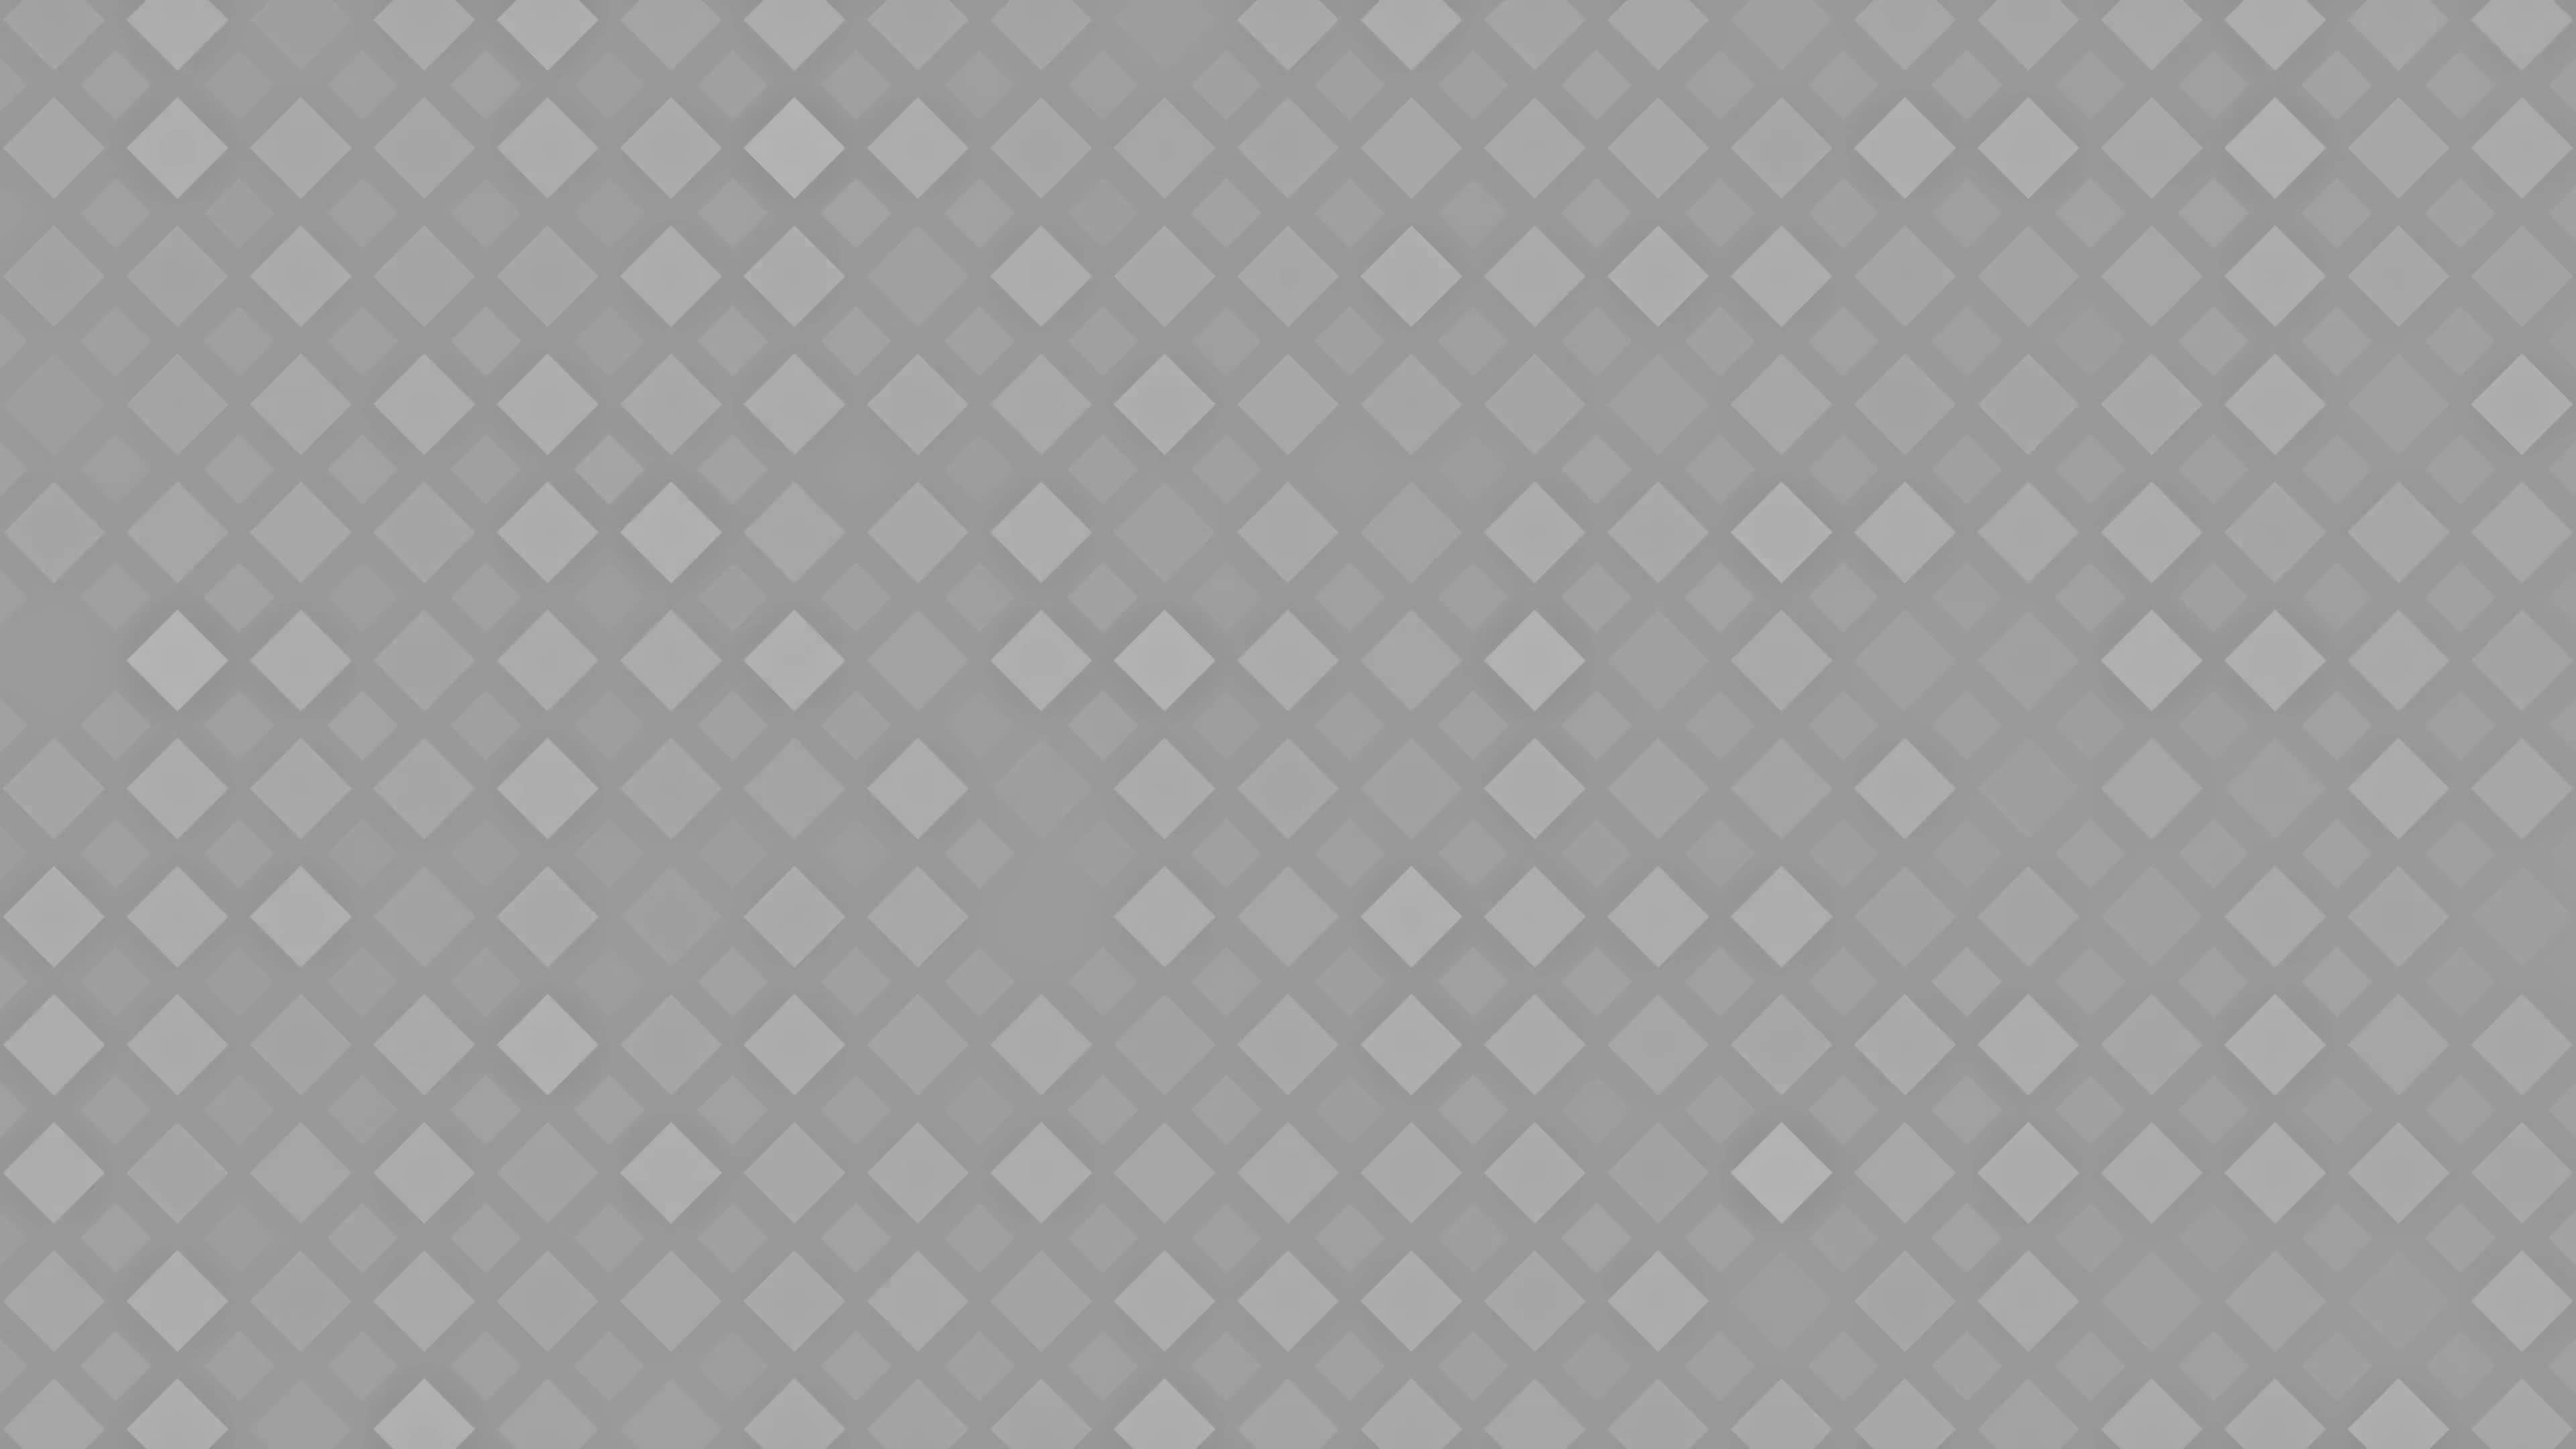 Silver grey rhombus square gray